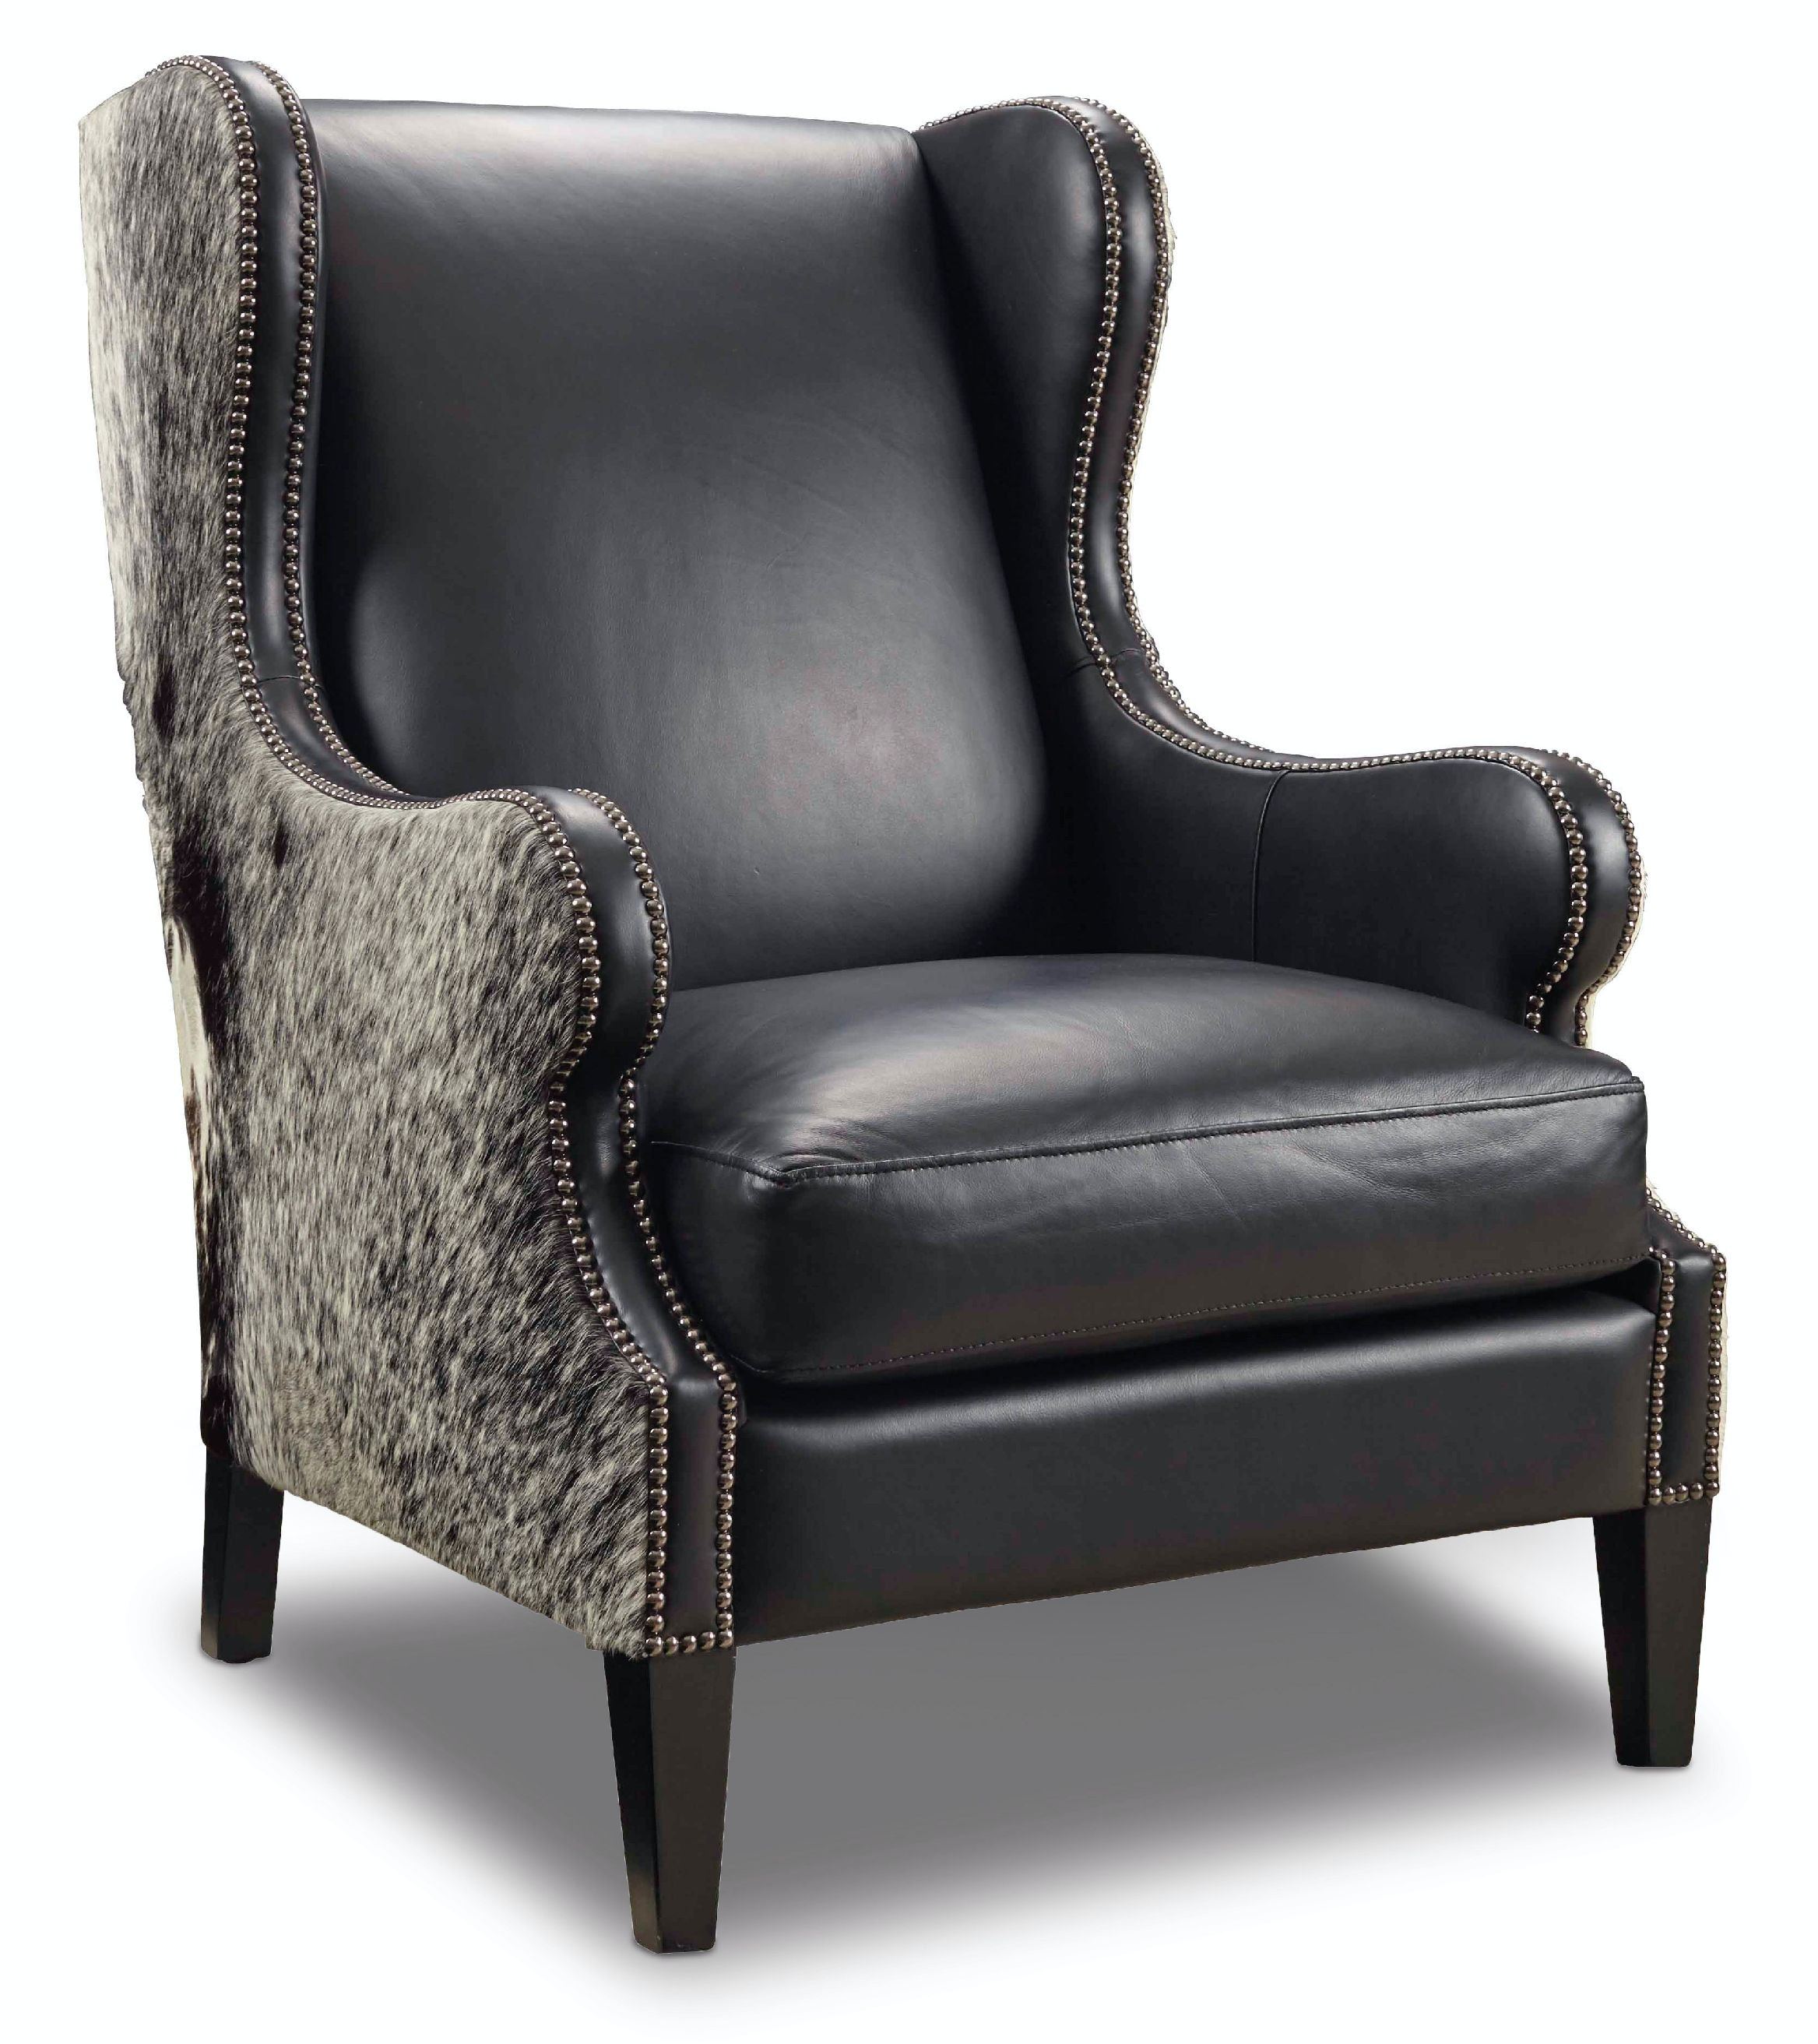 Lily Club Chair CC415-099